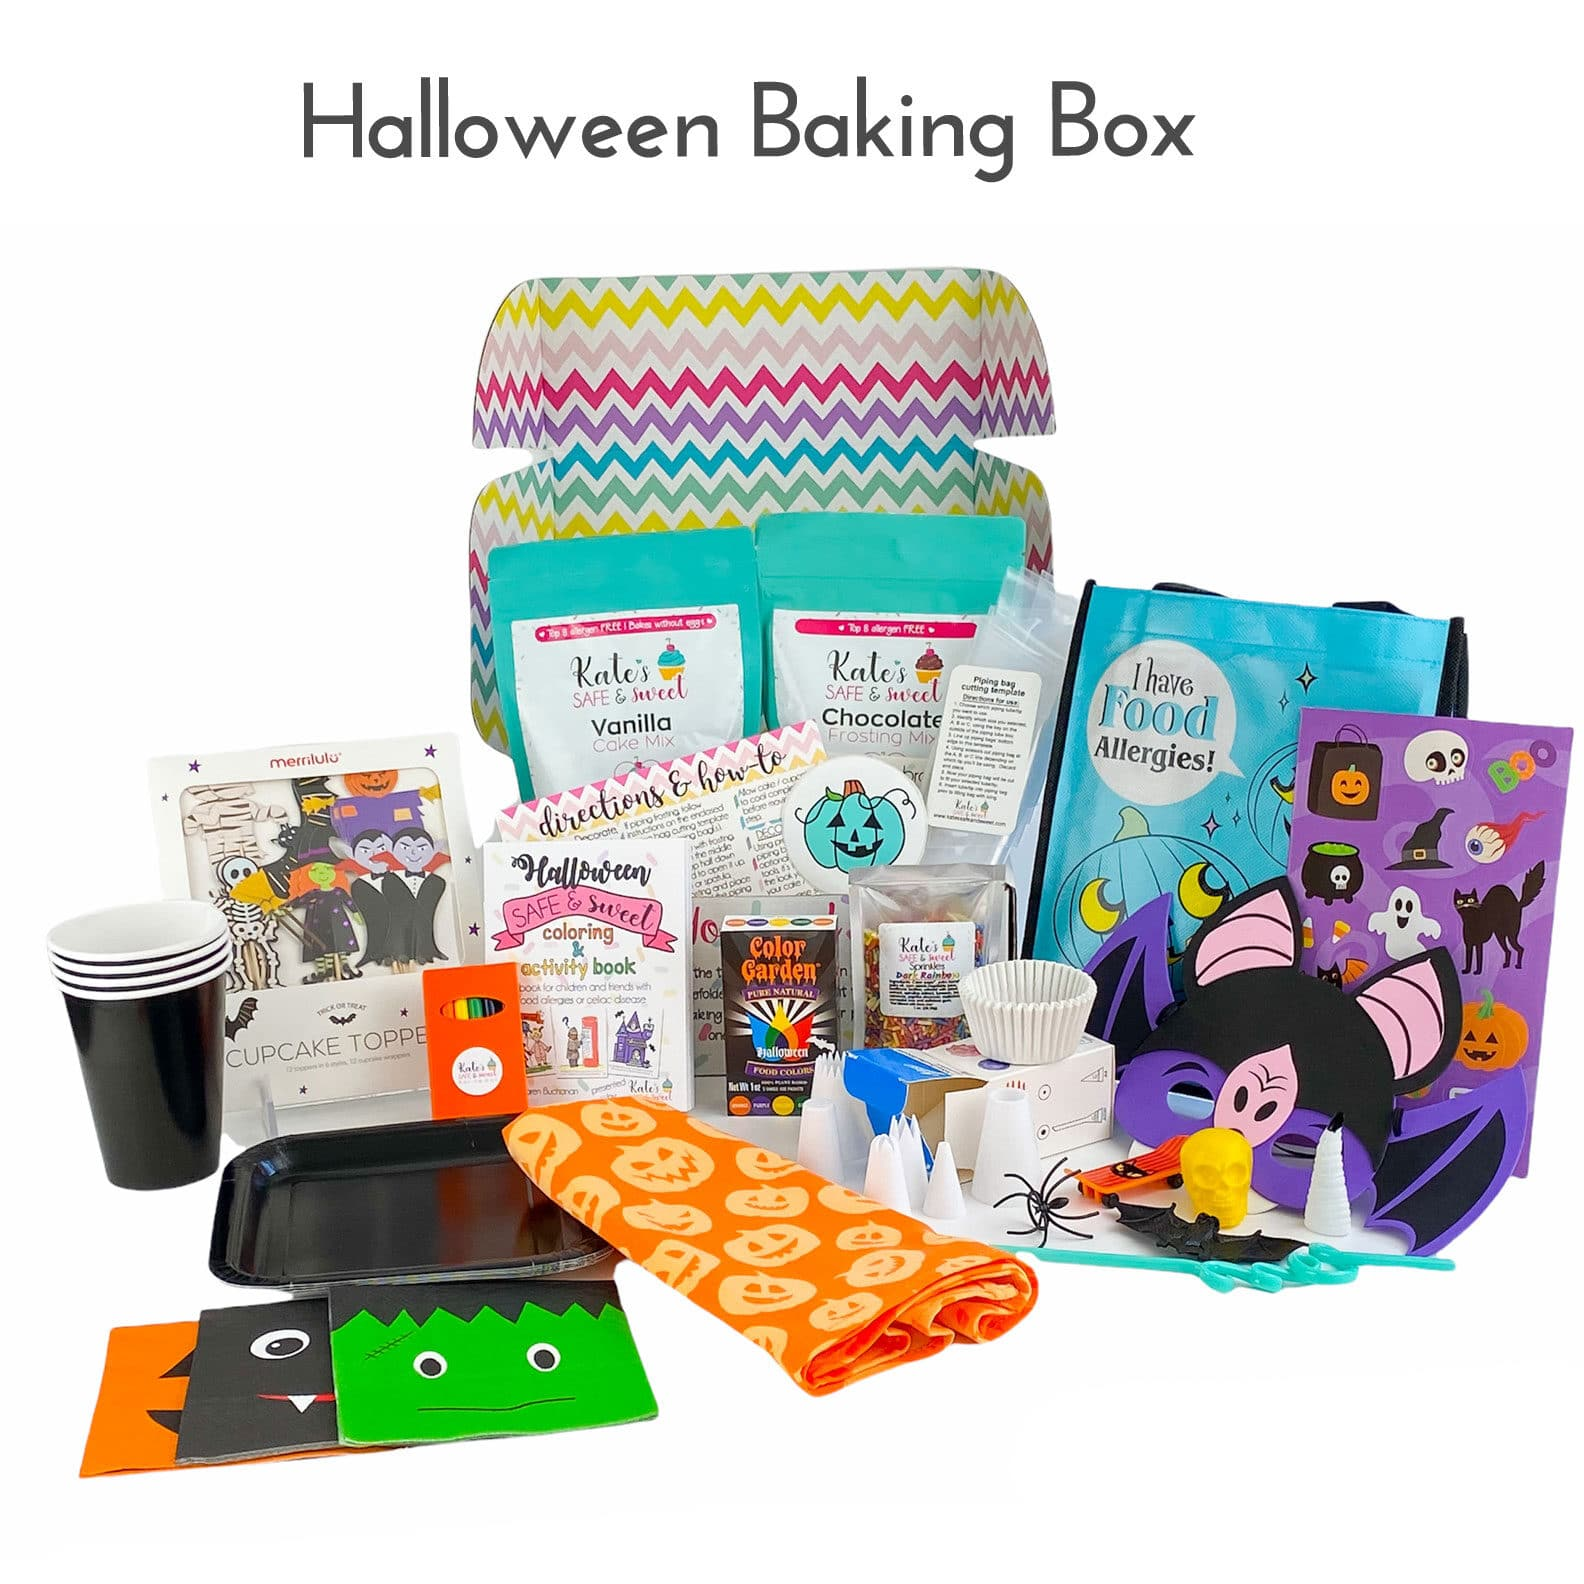 Kate's-Safe-and-Sweet---Halloween-Baking-Box-2021